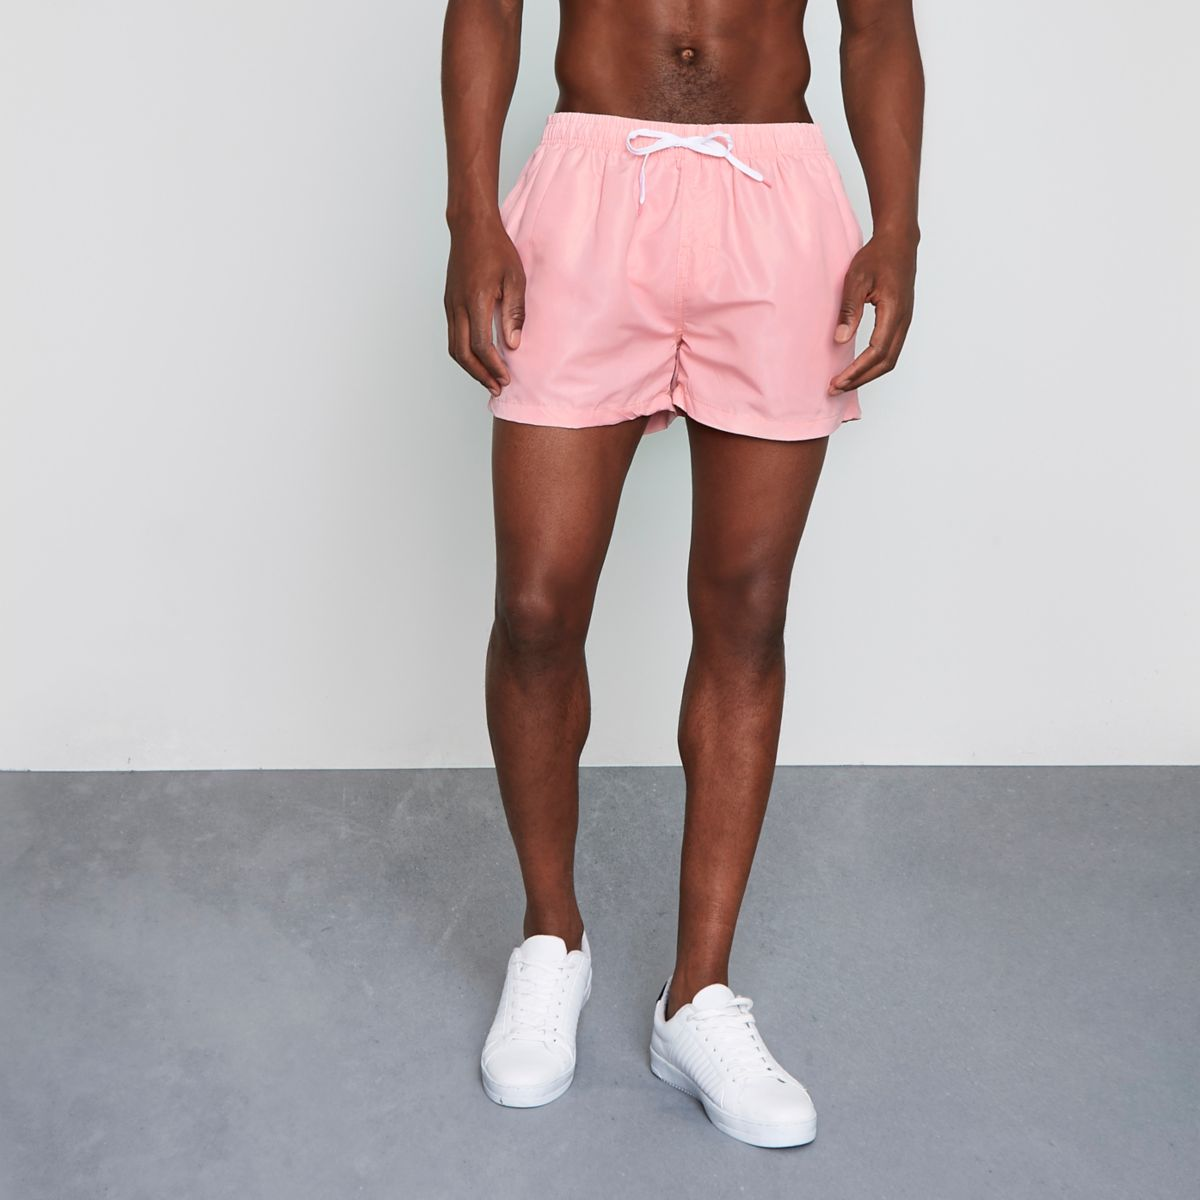 Light pink swim trunks